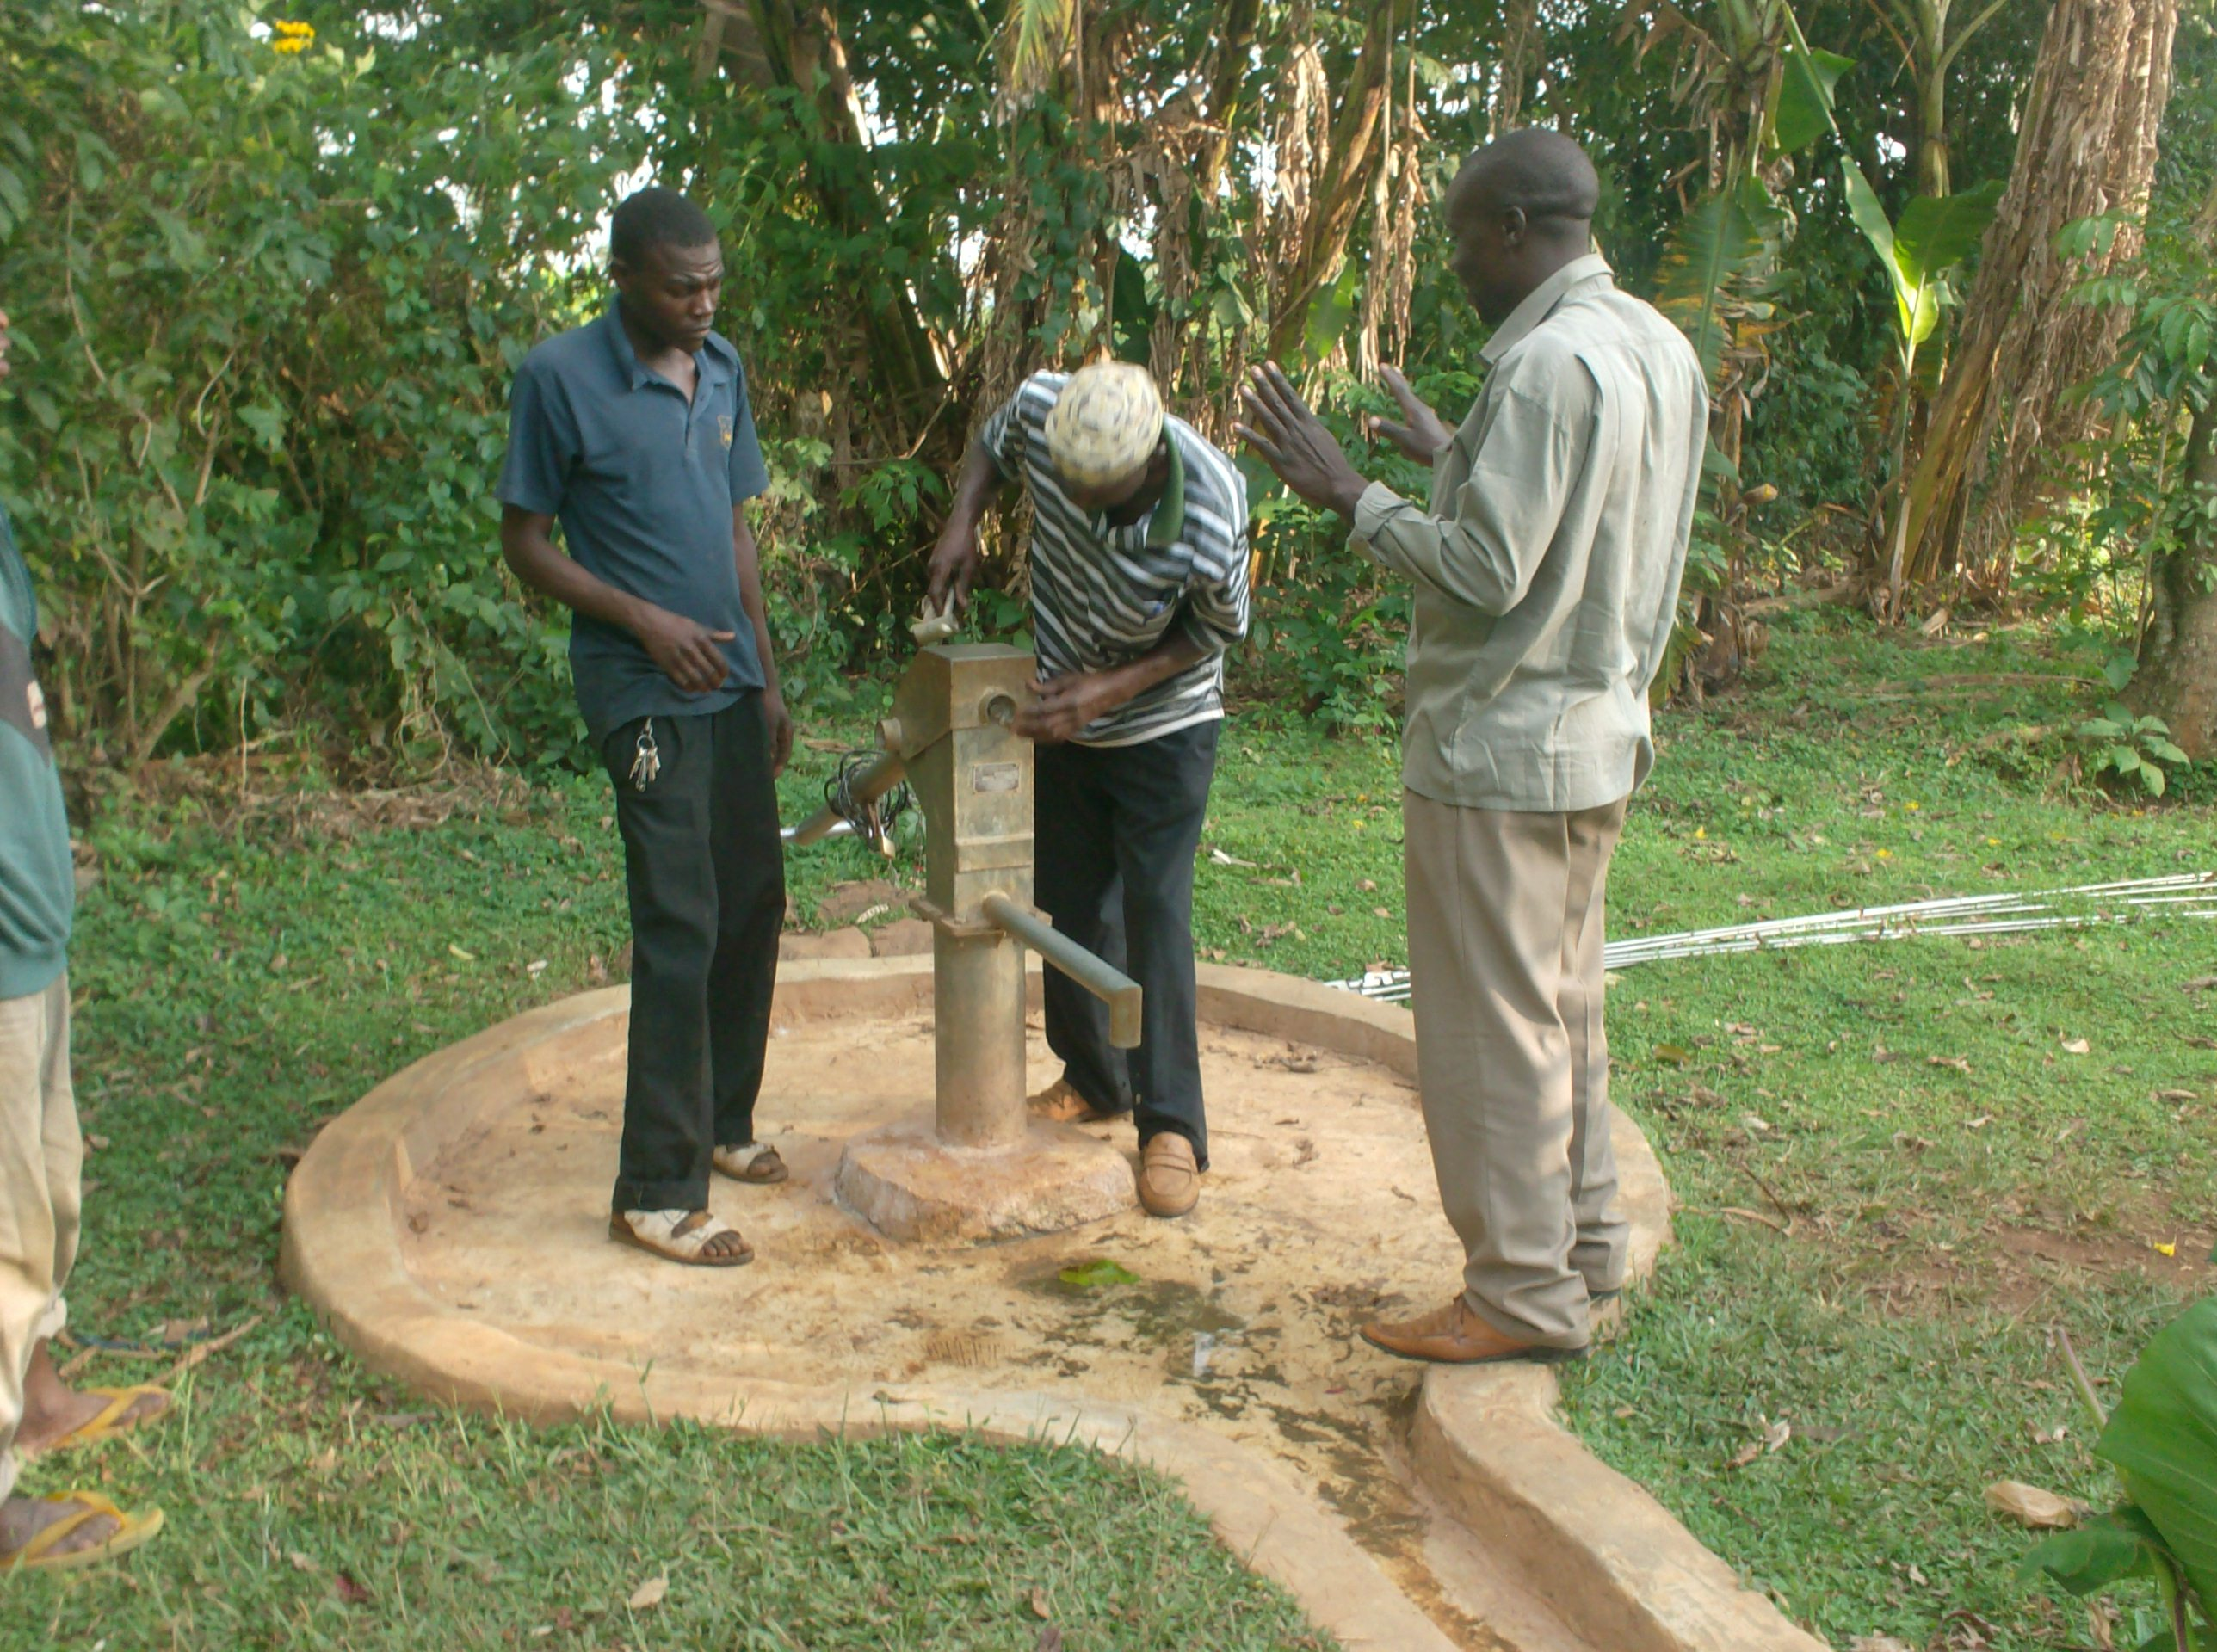 The Water Project : st-thomas-ack-lunza-well-opening-of-pump-head-during-rehab